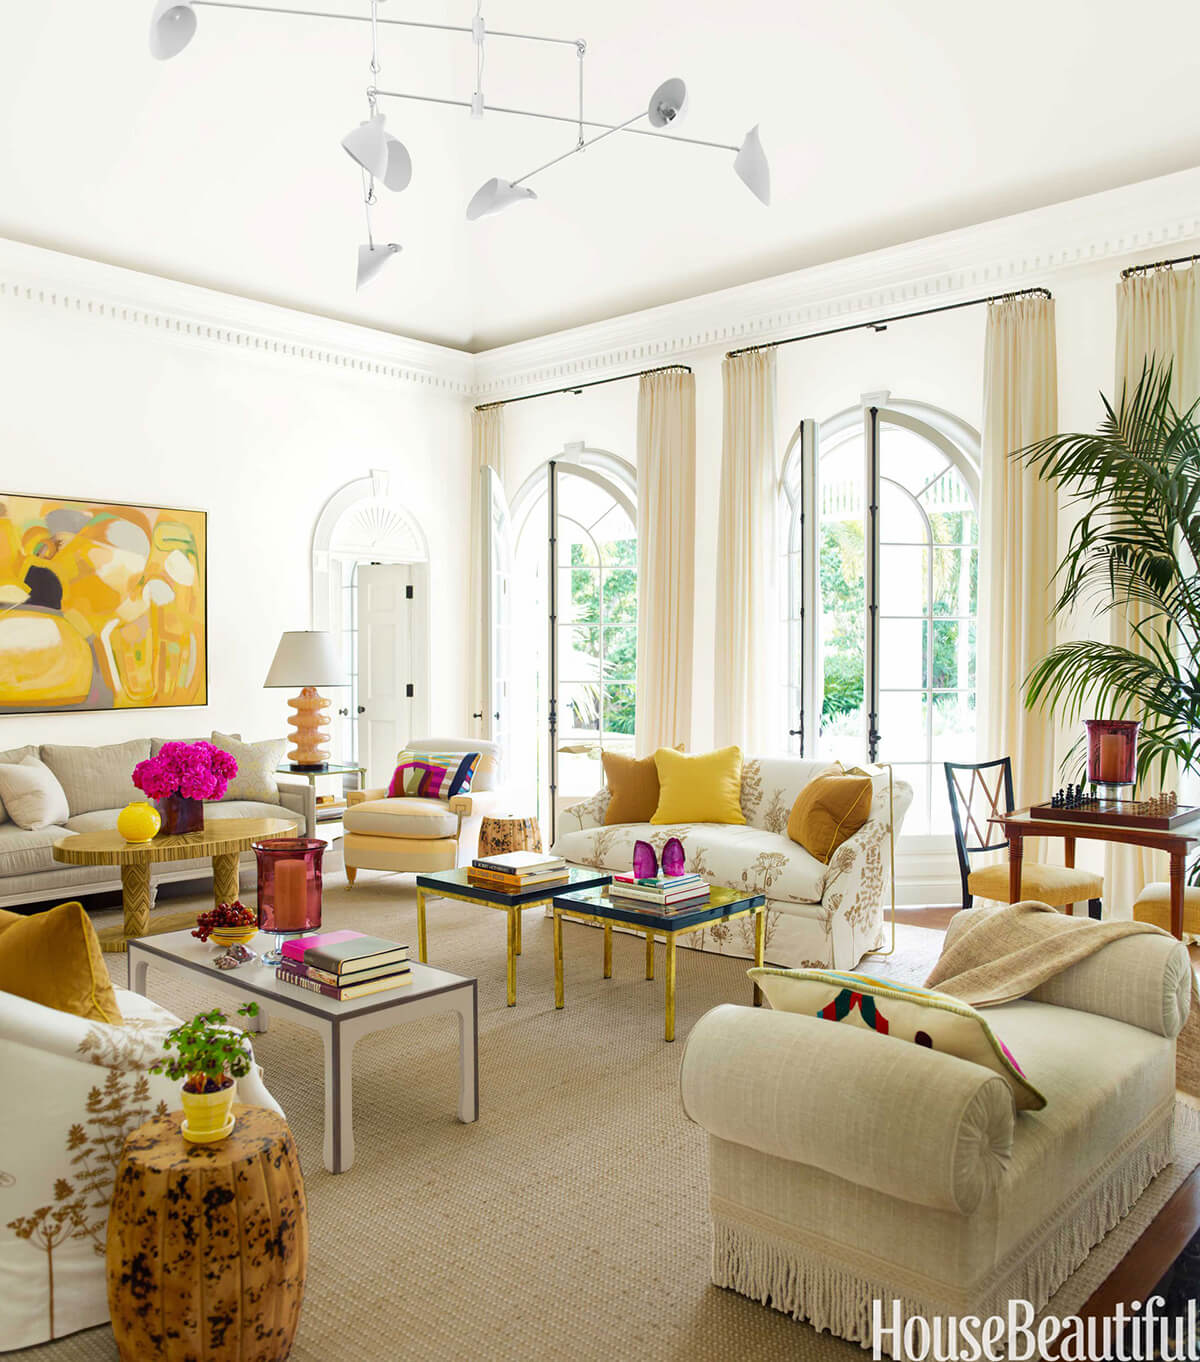 38 Best Tropical Style Decorating Ideas and Designs for 2018 35  Beige Living Room with Yellow and Magenta Accents